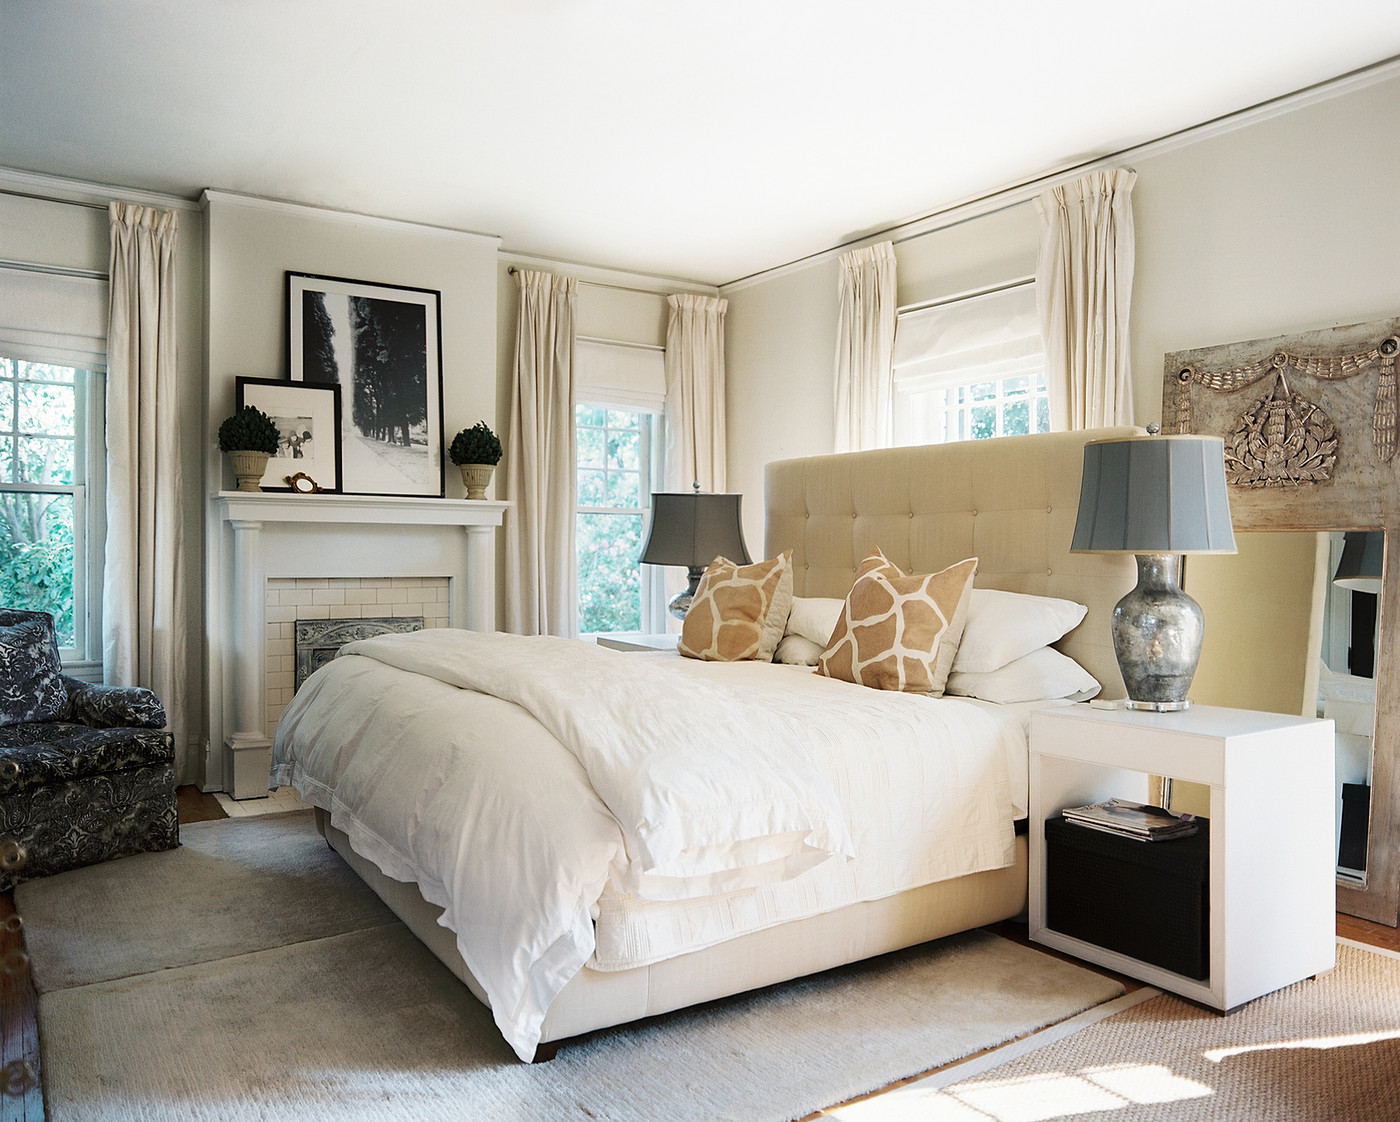 Foot Of The Bed Photos, Design, Ideas, Remodel, And Decor